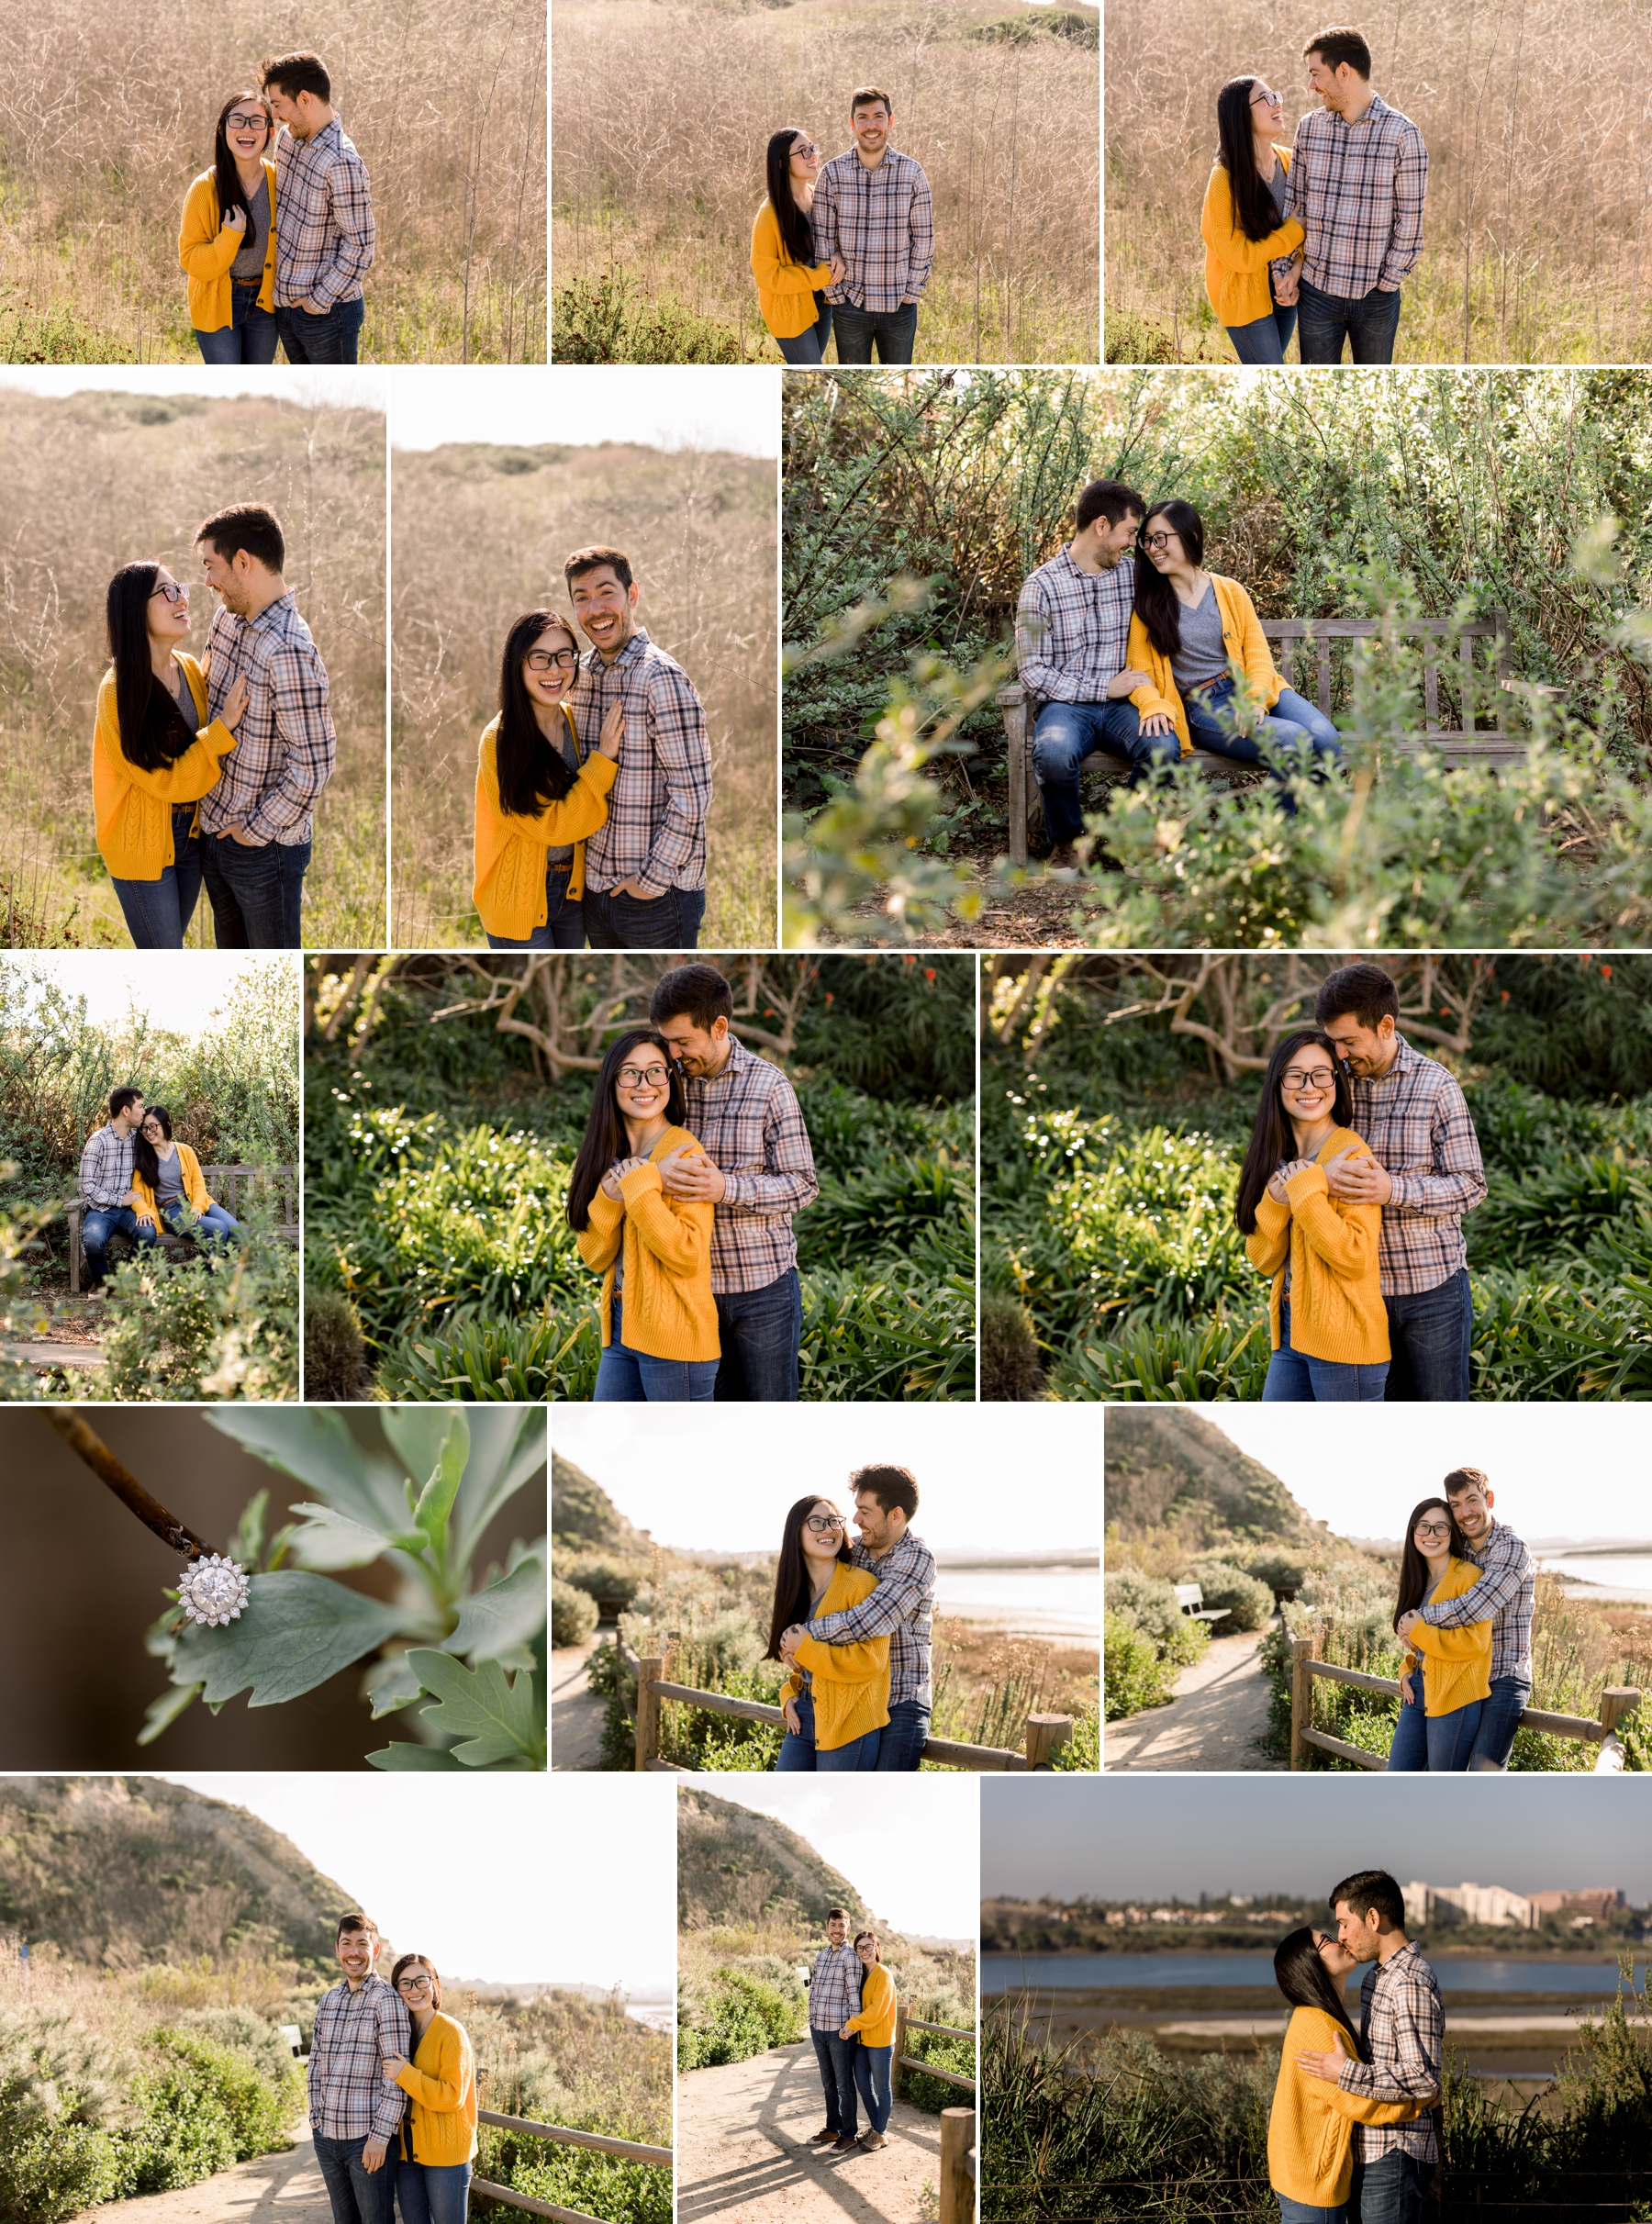 affordable-wedding-photography-orange-county-newport-beach-engagement-shy-heart-studios-1.jpg